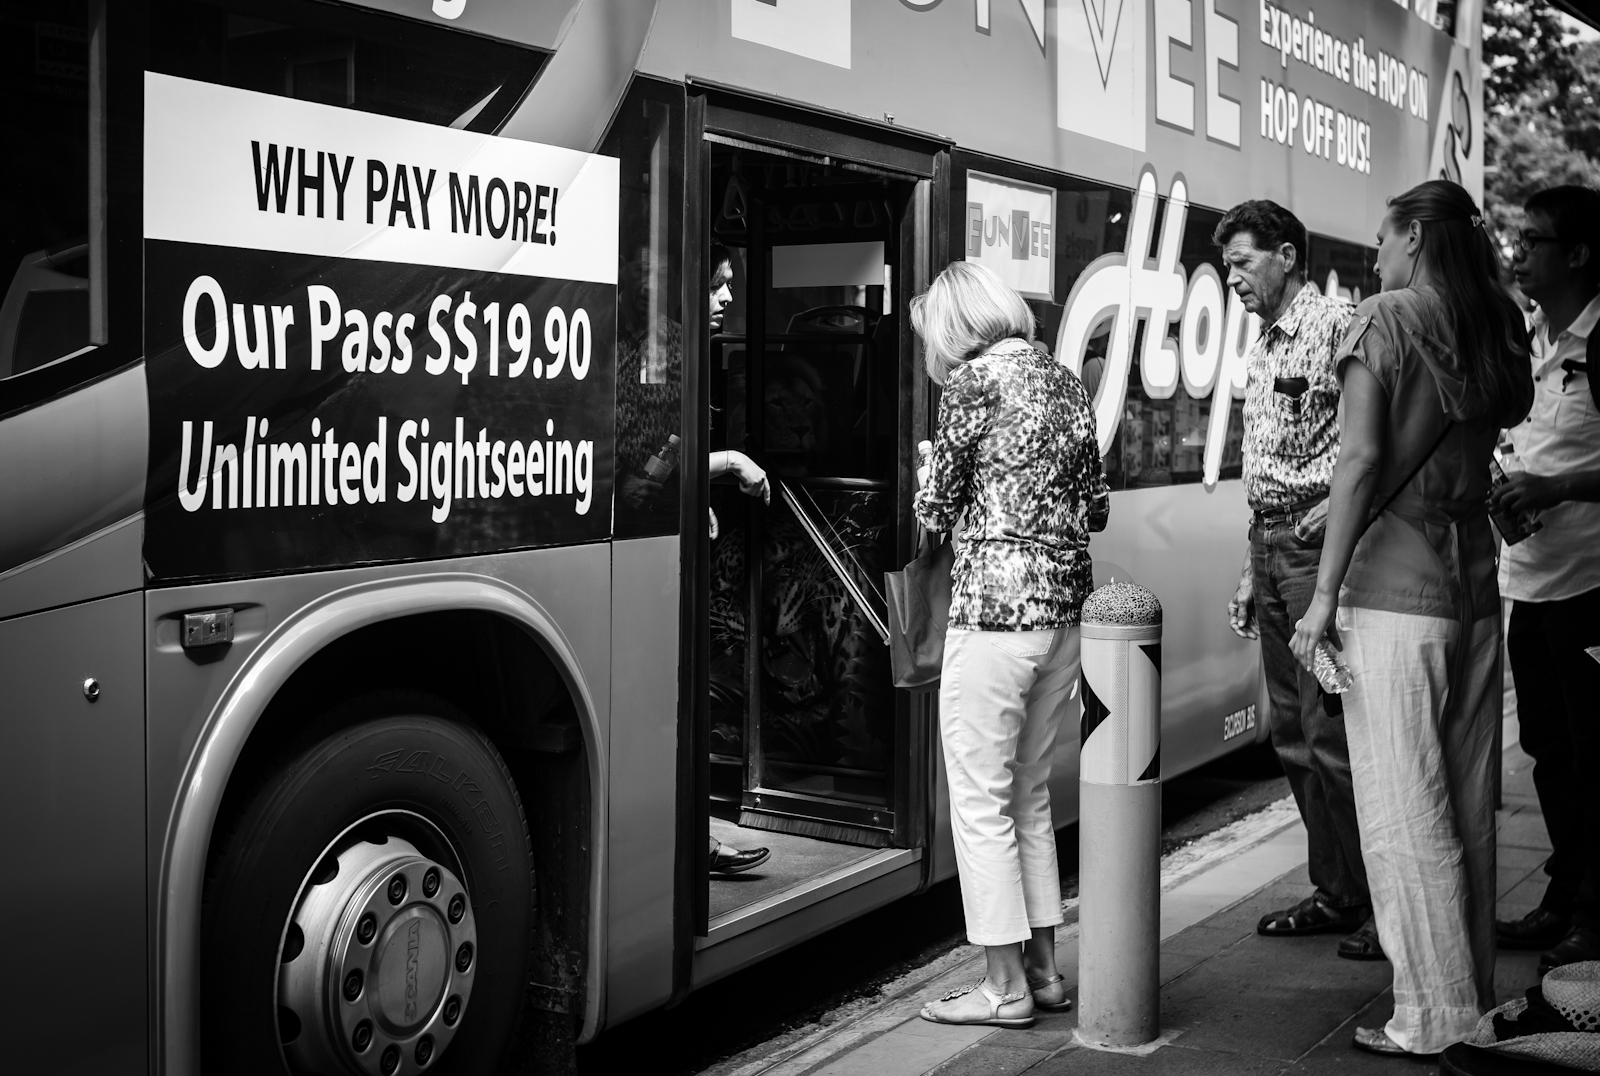 Street photography - tourists boarding a sightseeing bus